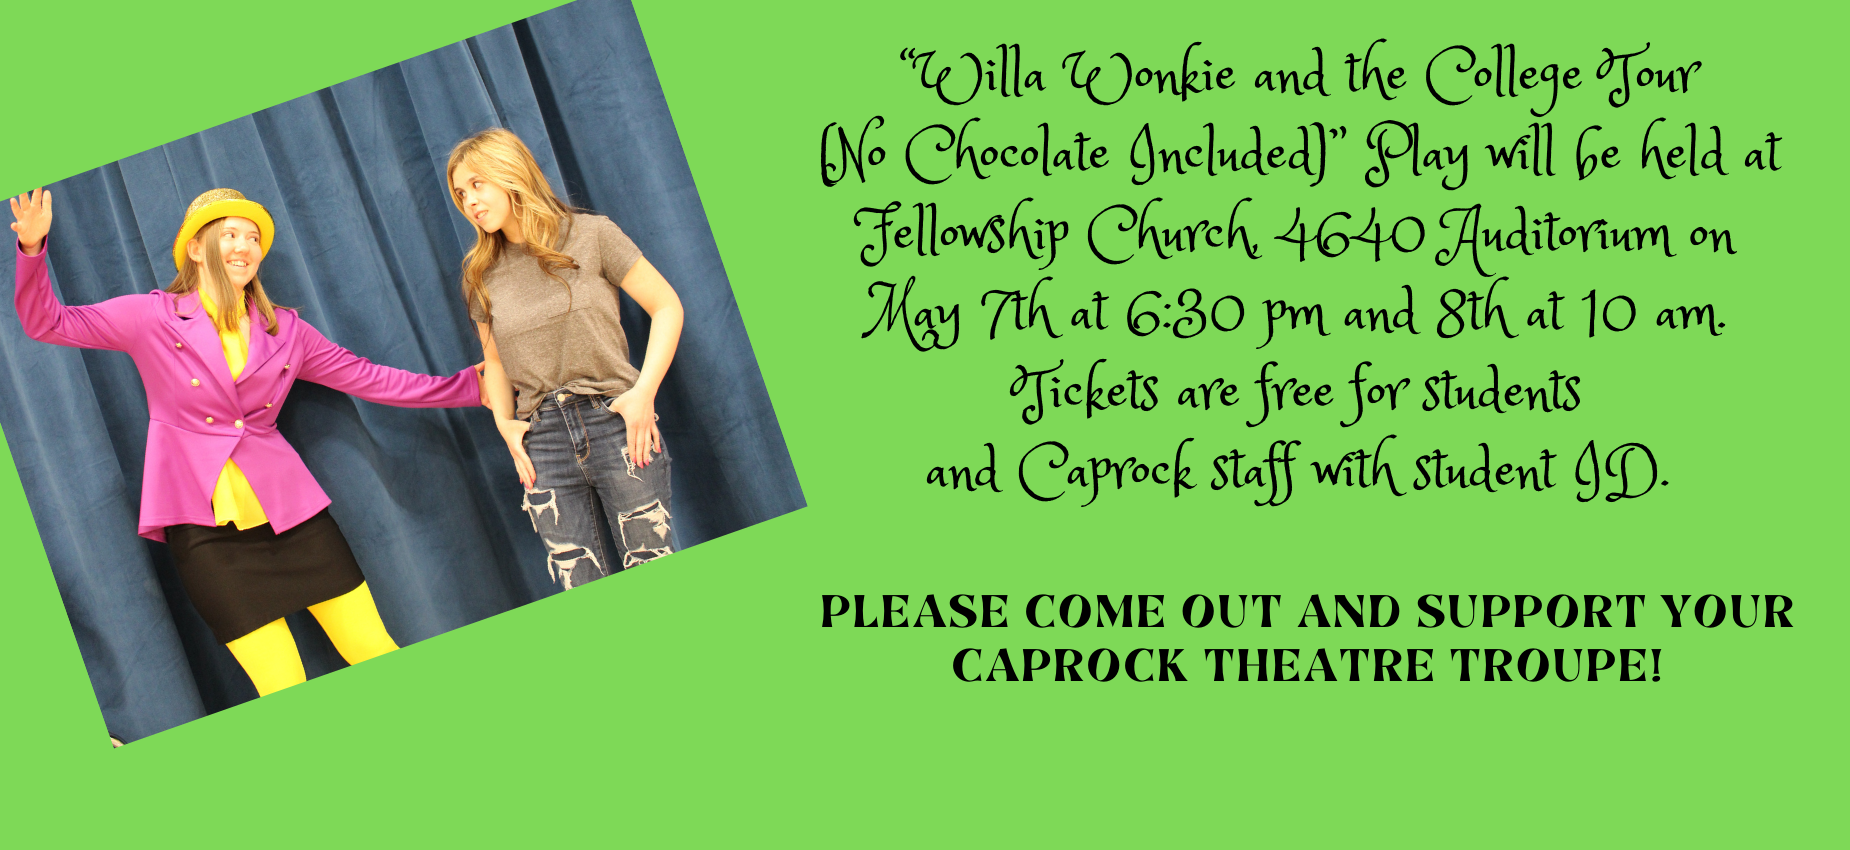 See the play Willa Wonkie and the college tour on May 7th and 8th